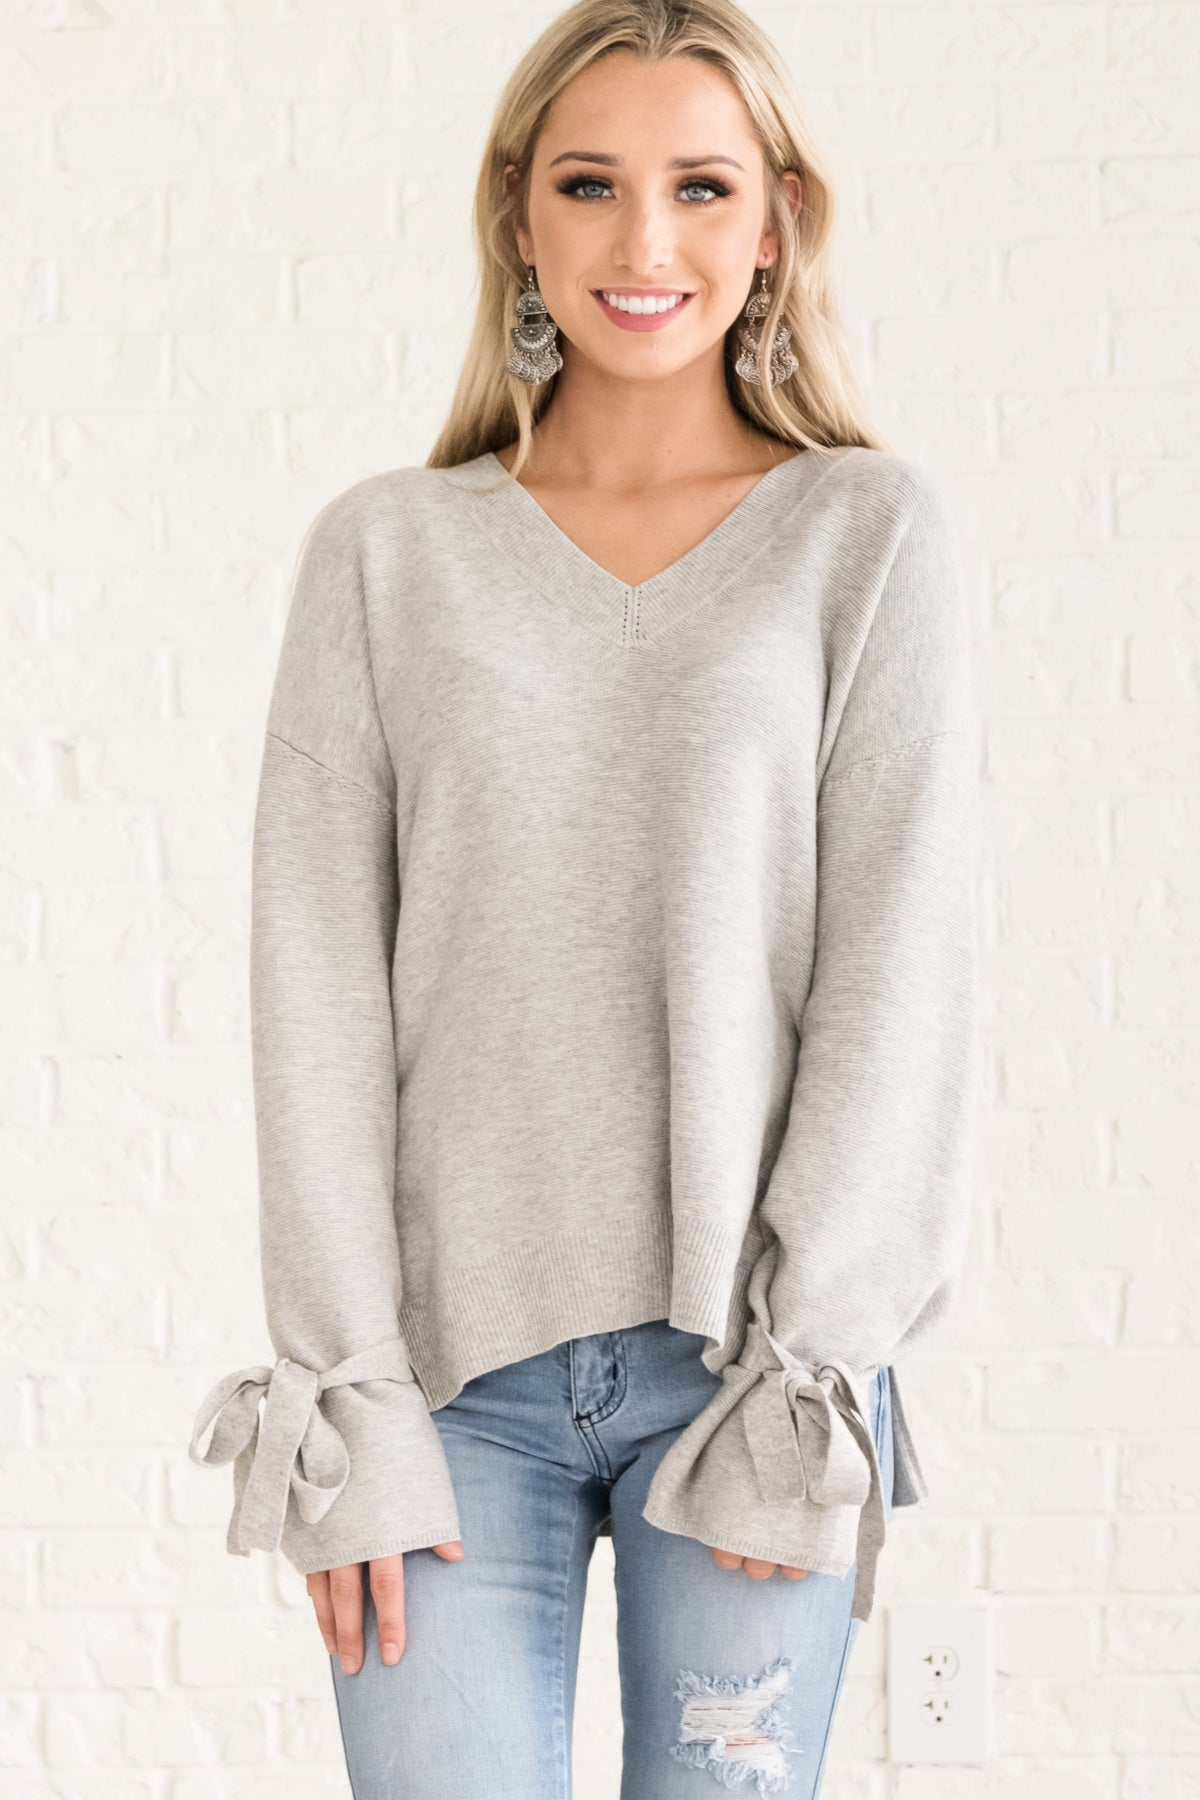 Gray Cute Cozy Warm Long Sleeve Sweaters for Women